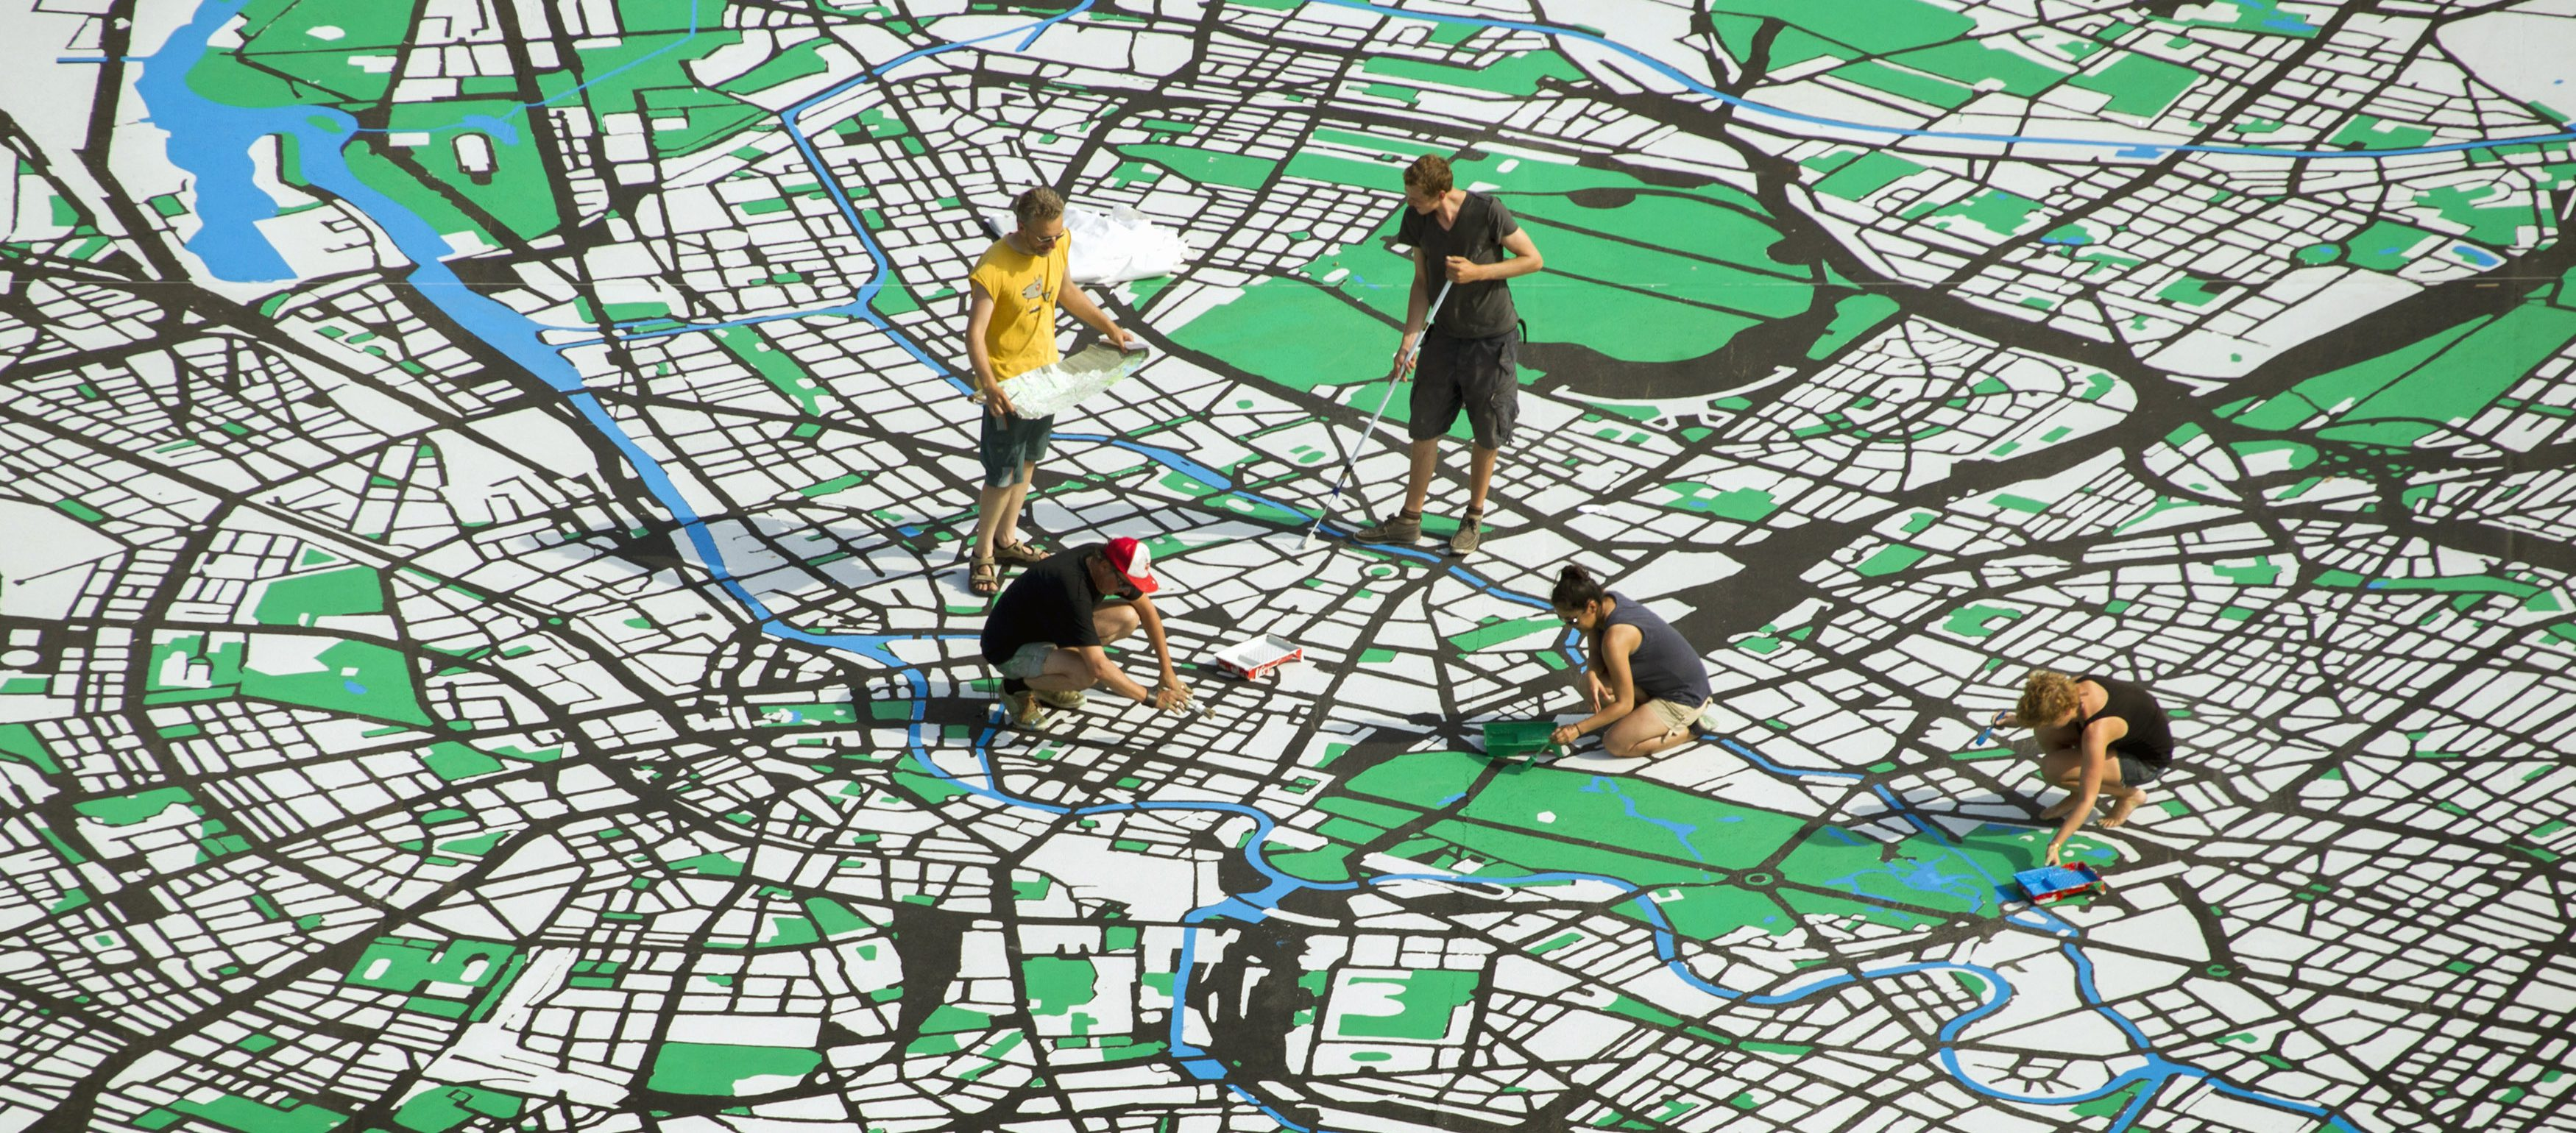 Artists work on a giant city map of Berlin that is drawn on a concrete square in central Berlin